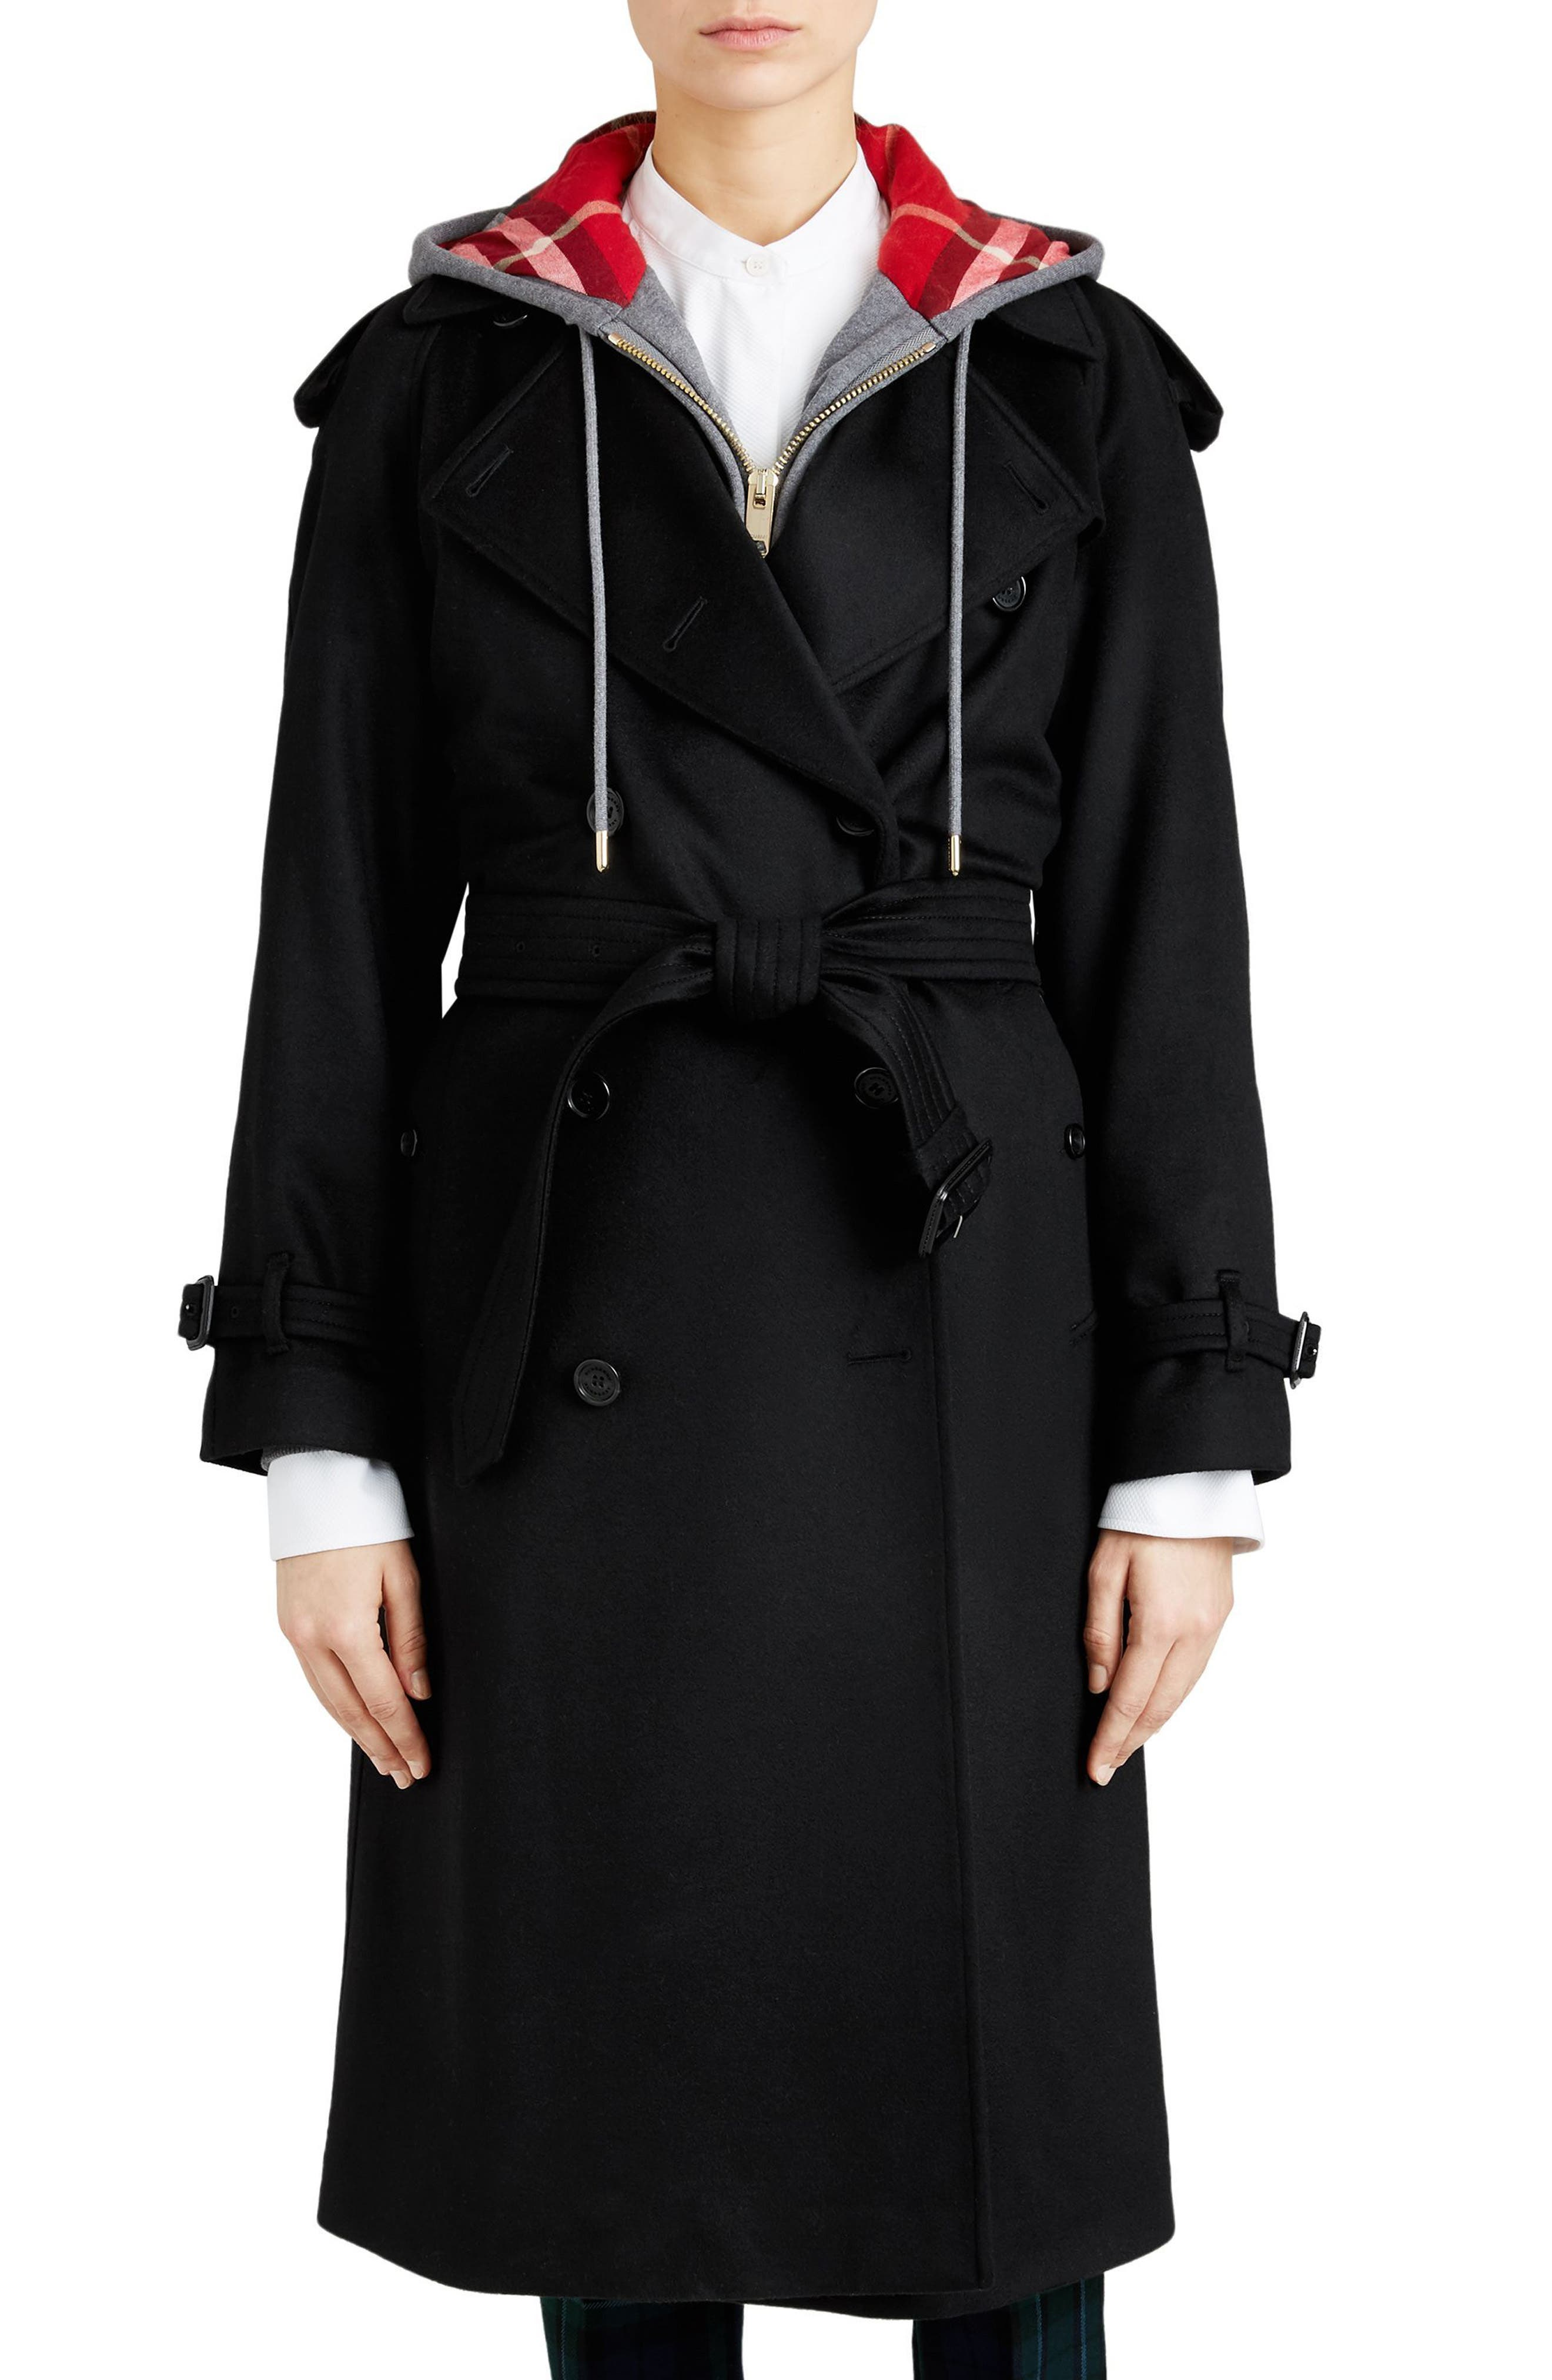 Eastheath Cashmere Trench Coat,                         Main,                         color, Black